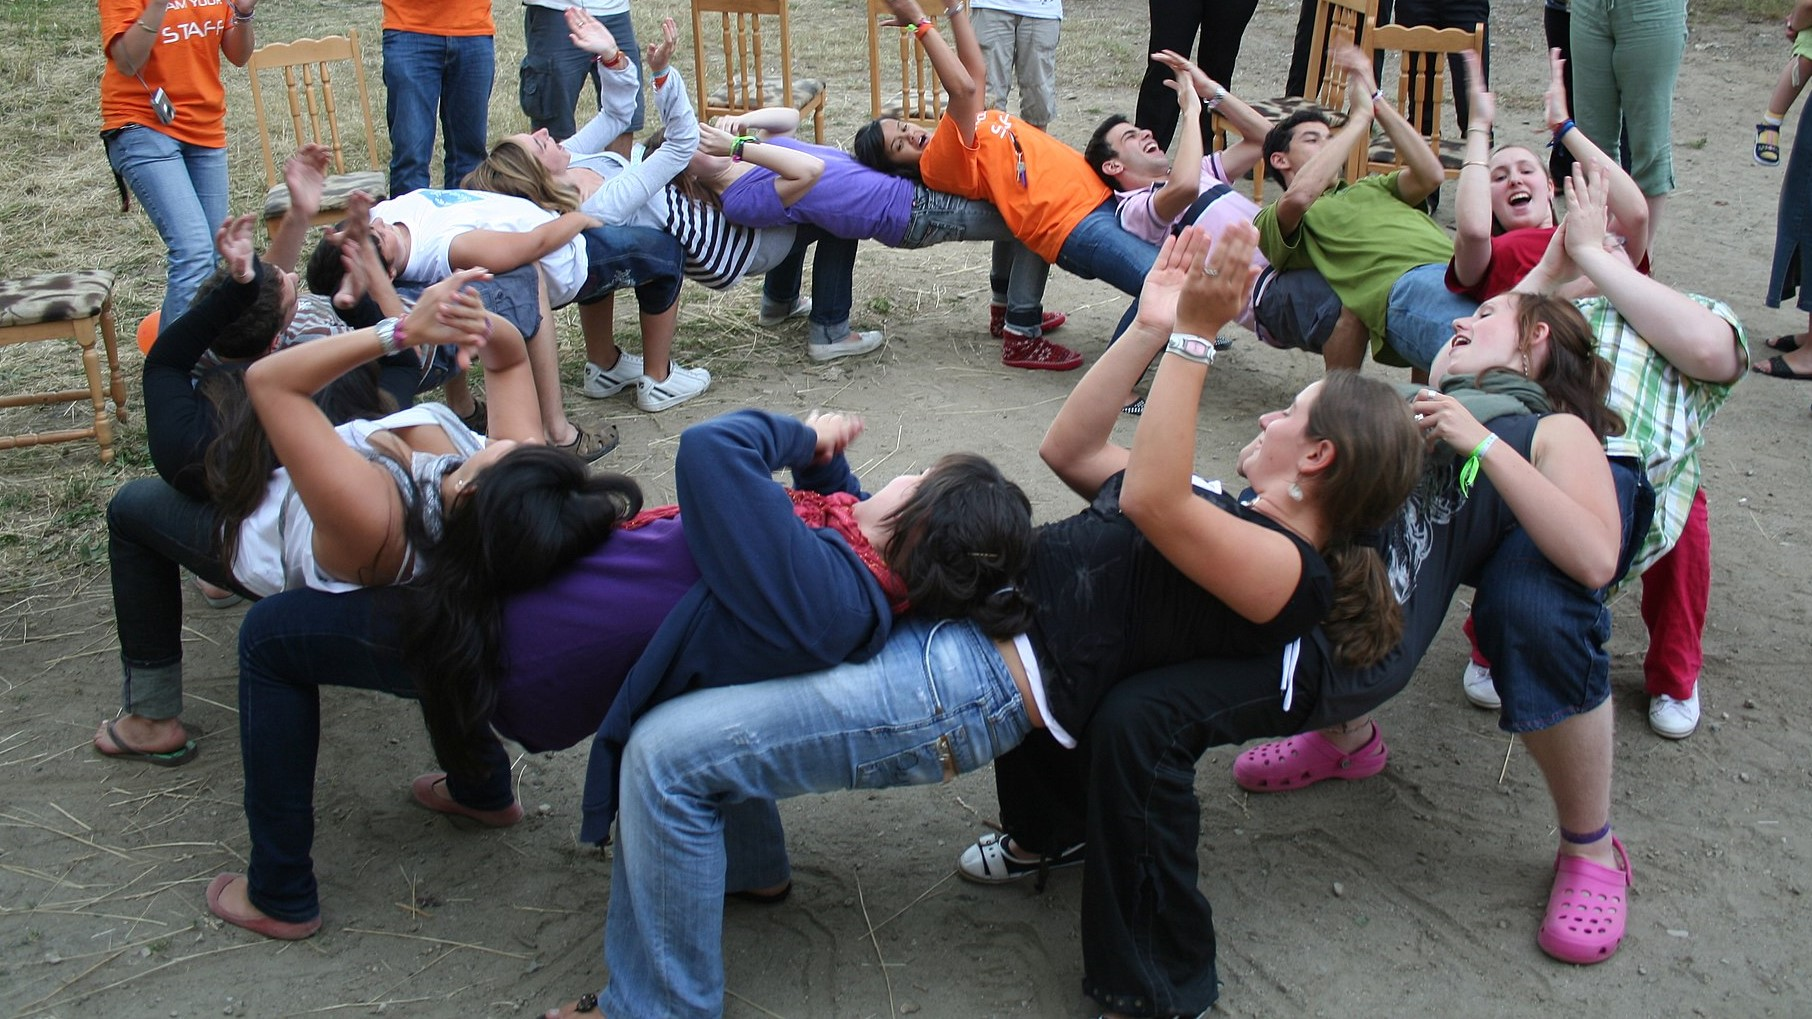 Image: A dozen people form a circle forming a human chain by balancing on each other's laps in a trust game